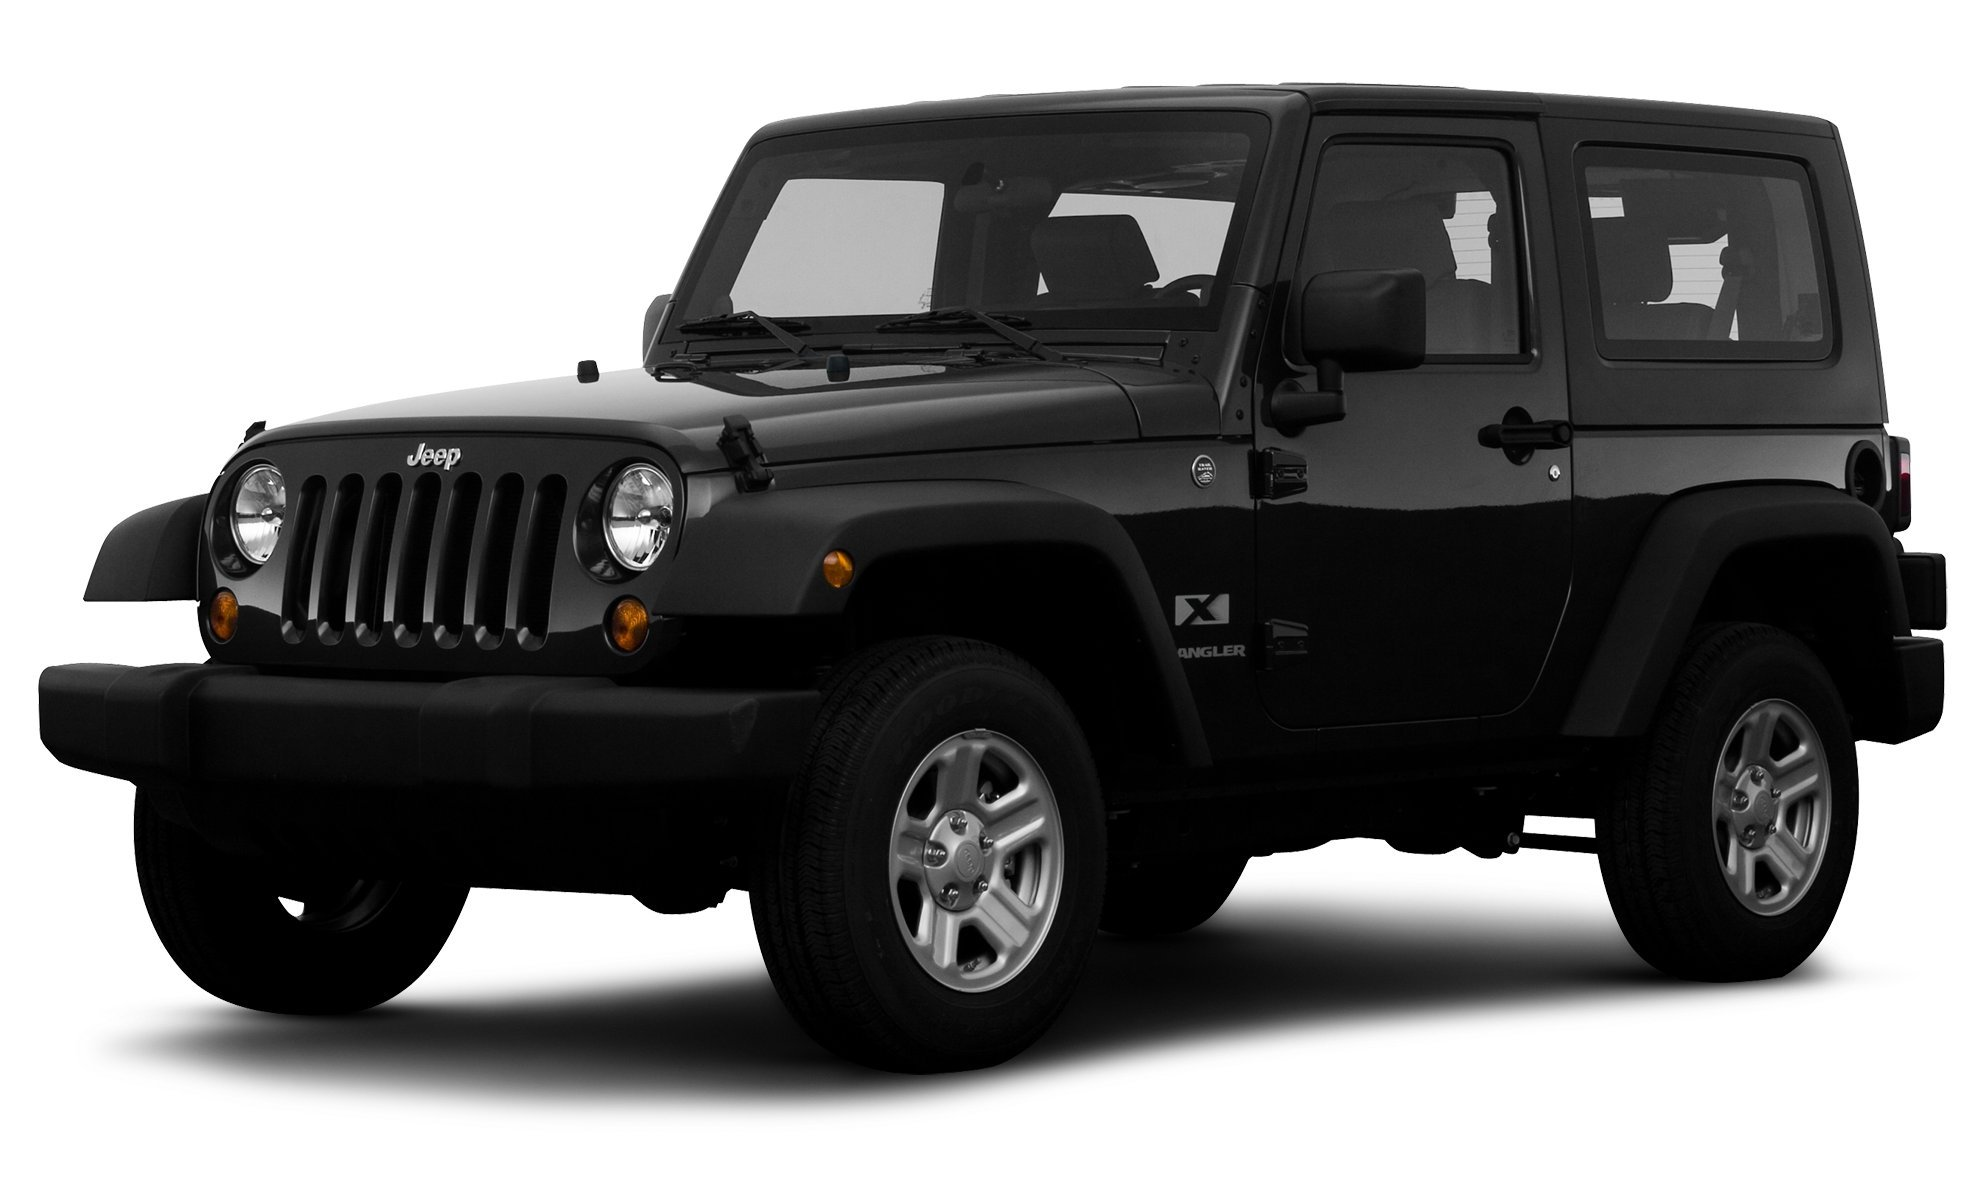 Amazoncom 2008 Jeep Wrangler Reviews Images and Specs Vehicles